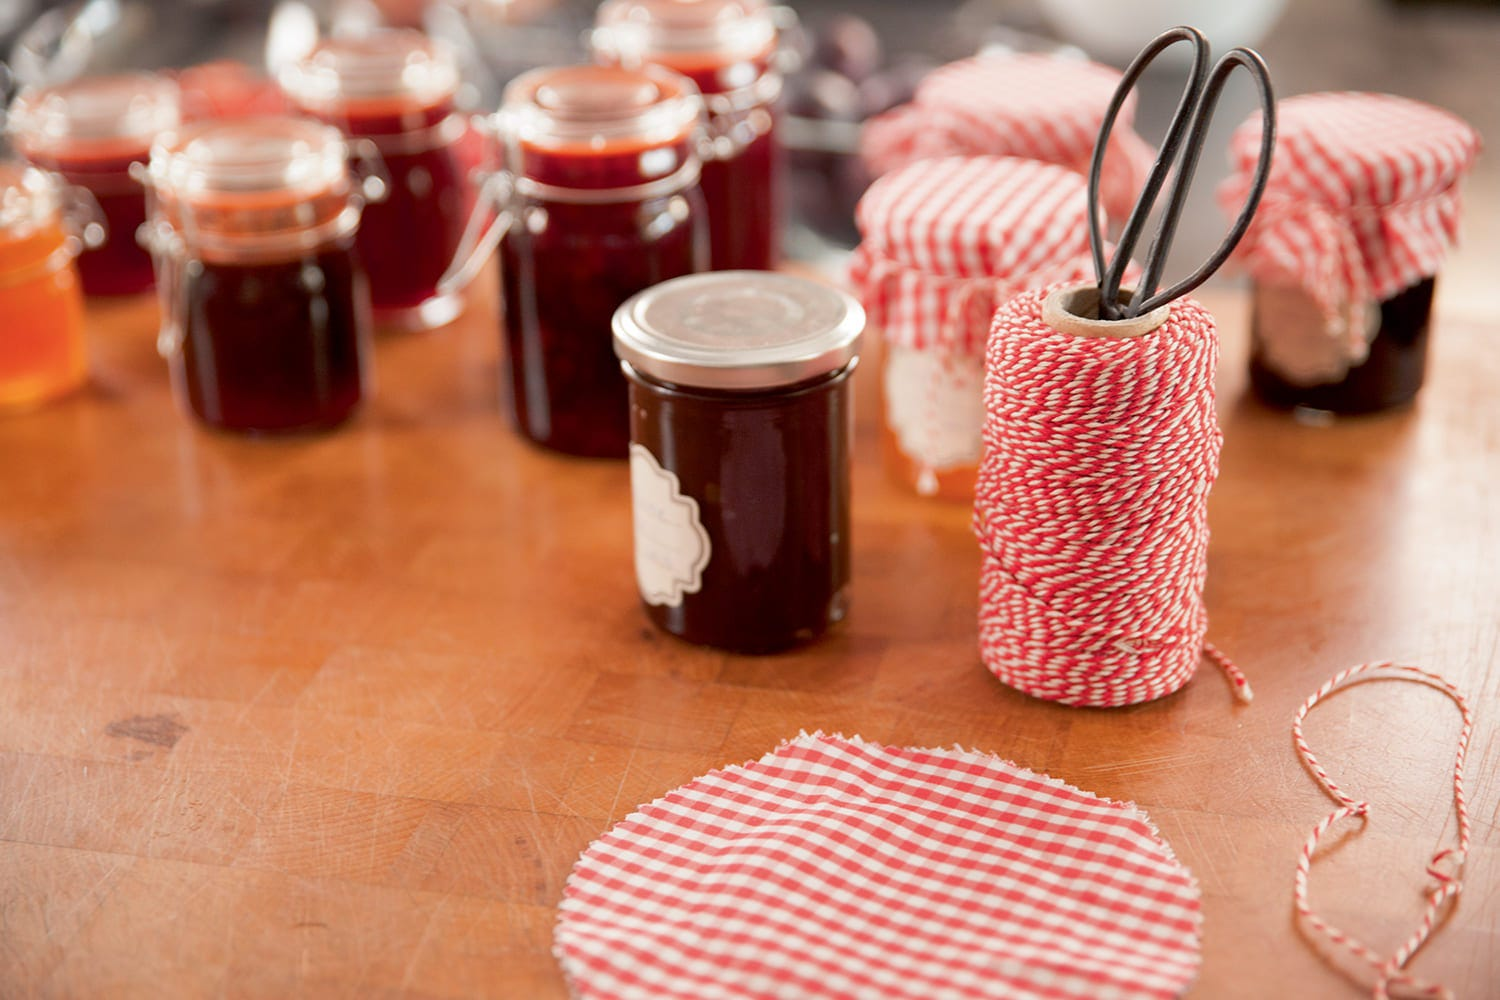 confection de pots de confiture maison